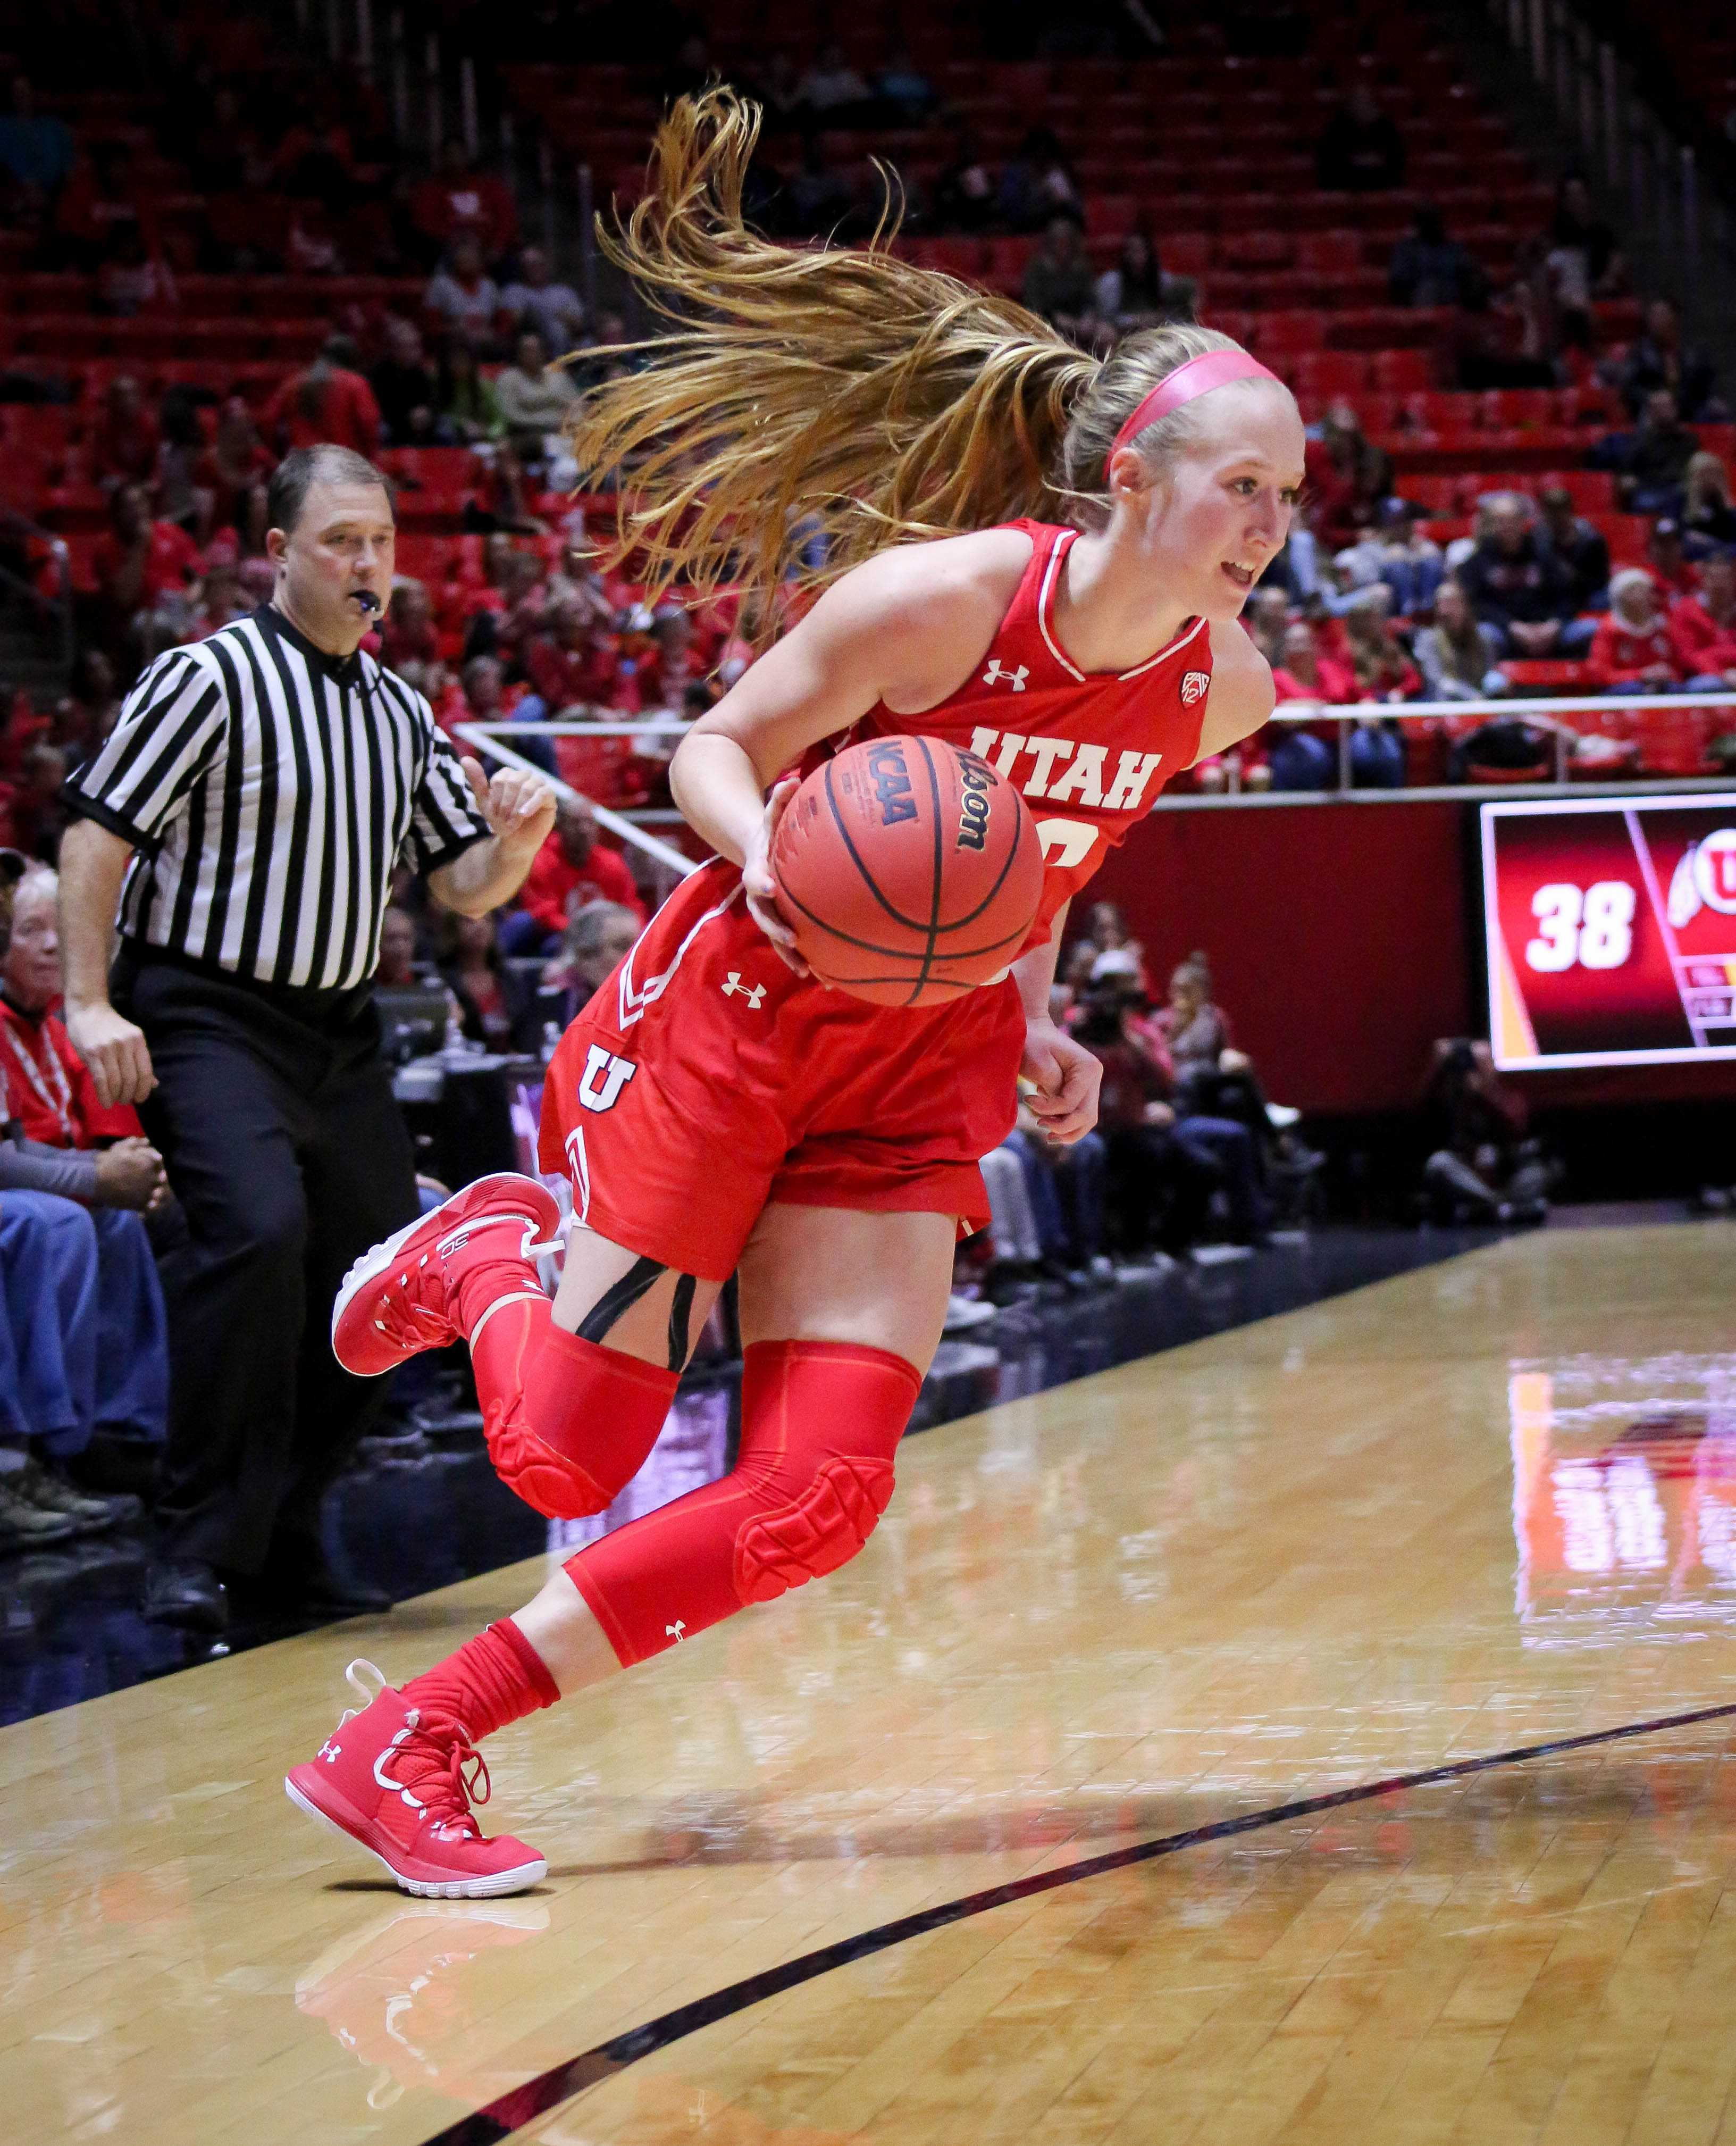 The University of Utah Lady Utes take on Brigham Young University at the Huntsman Center in Salt Lake City, UT on Saturaday, Dec. 8, 2018 (Photo by Cassandra Palor | Daily Utah Chronicle)